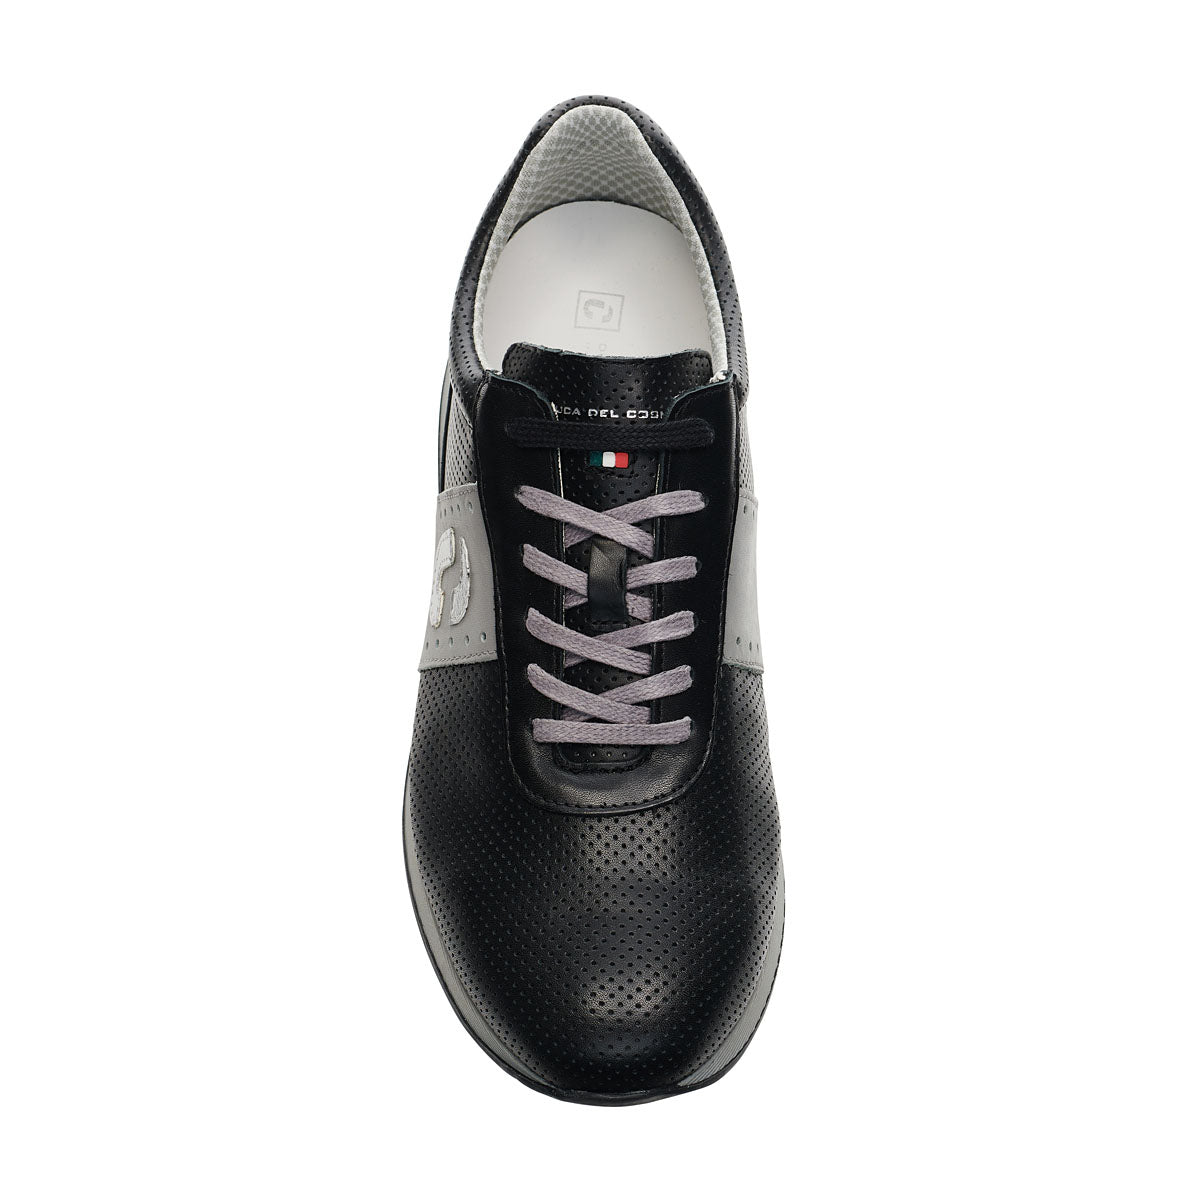 Men's Belair Black Golf Shoe